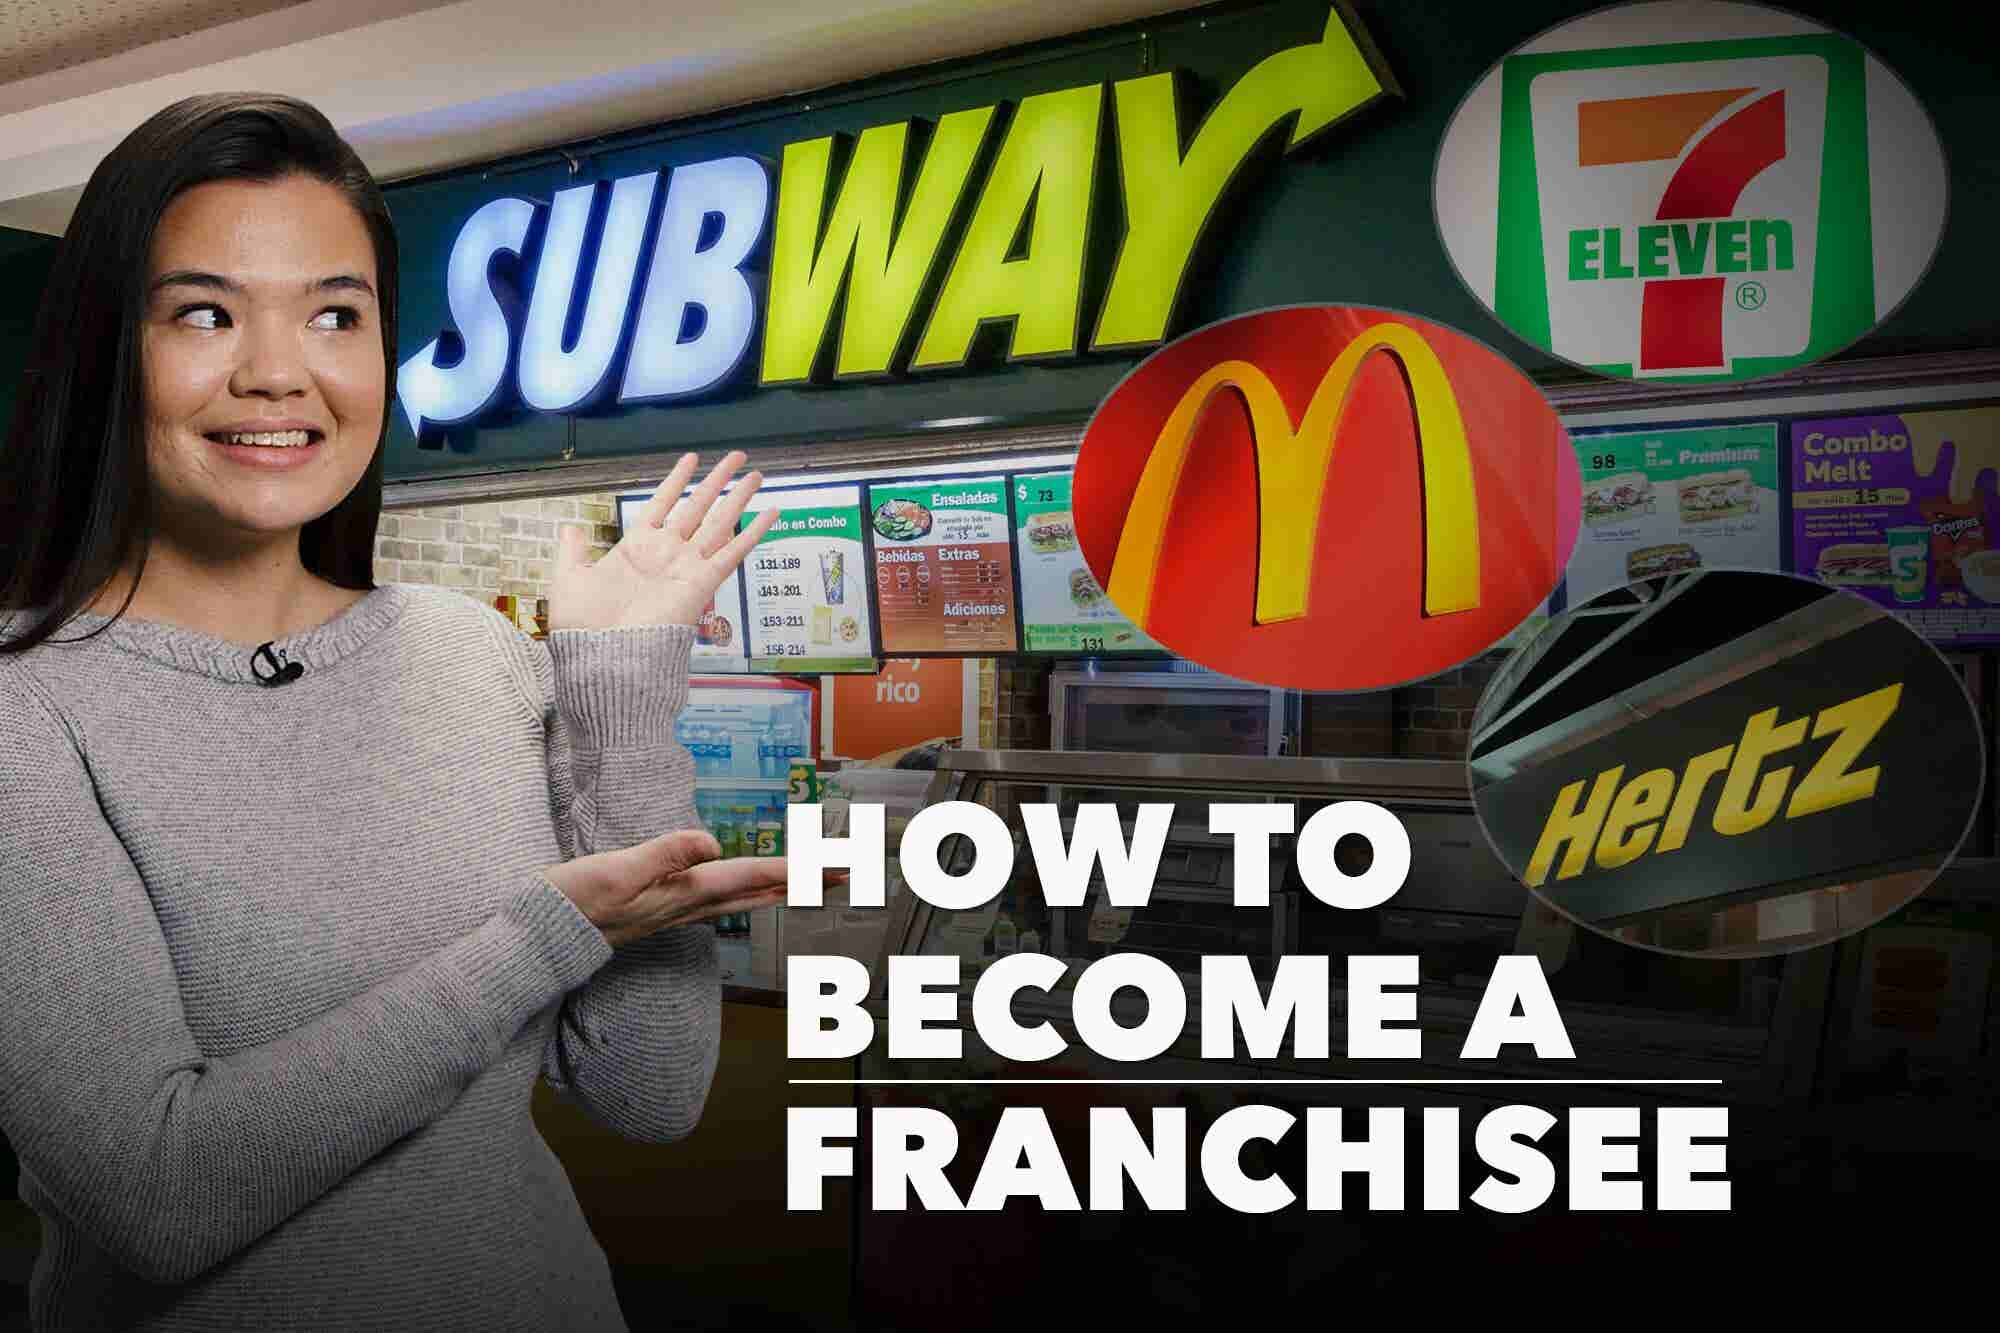 3 Tips for Becoming a Franchisee (60-Second Video)